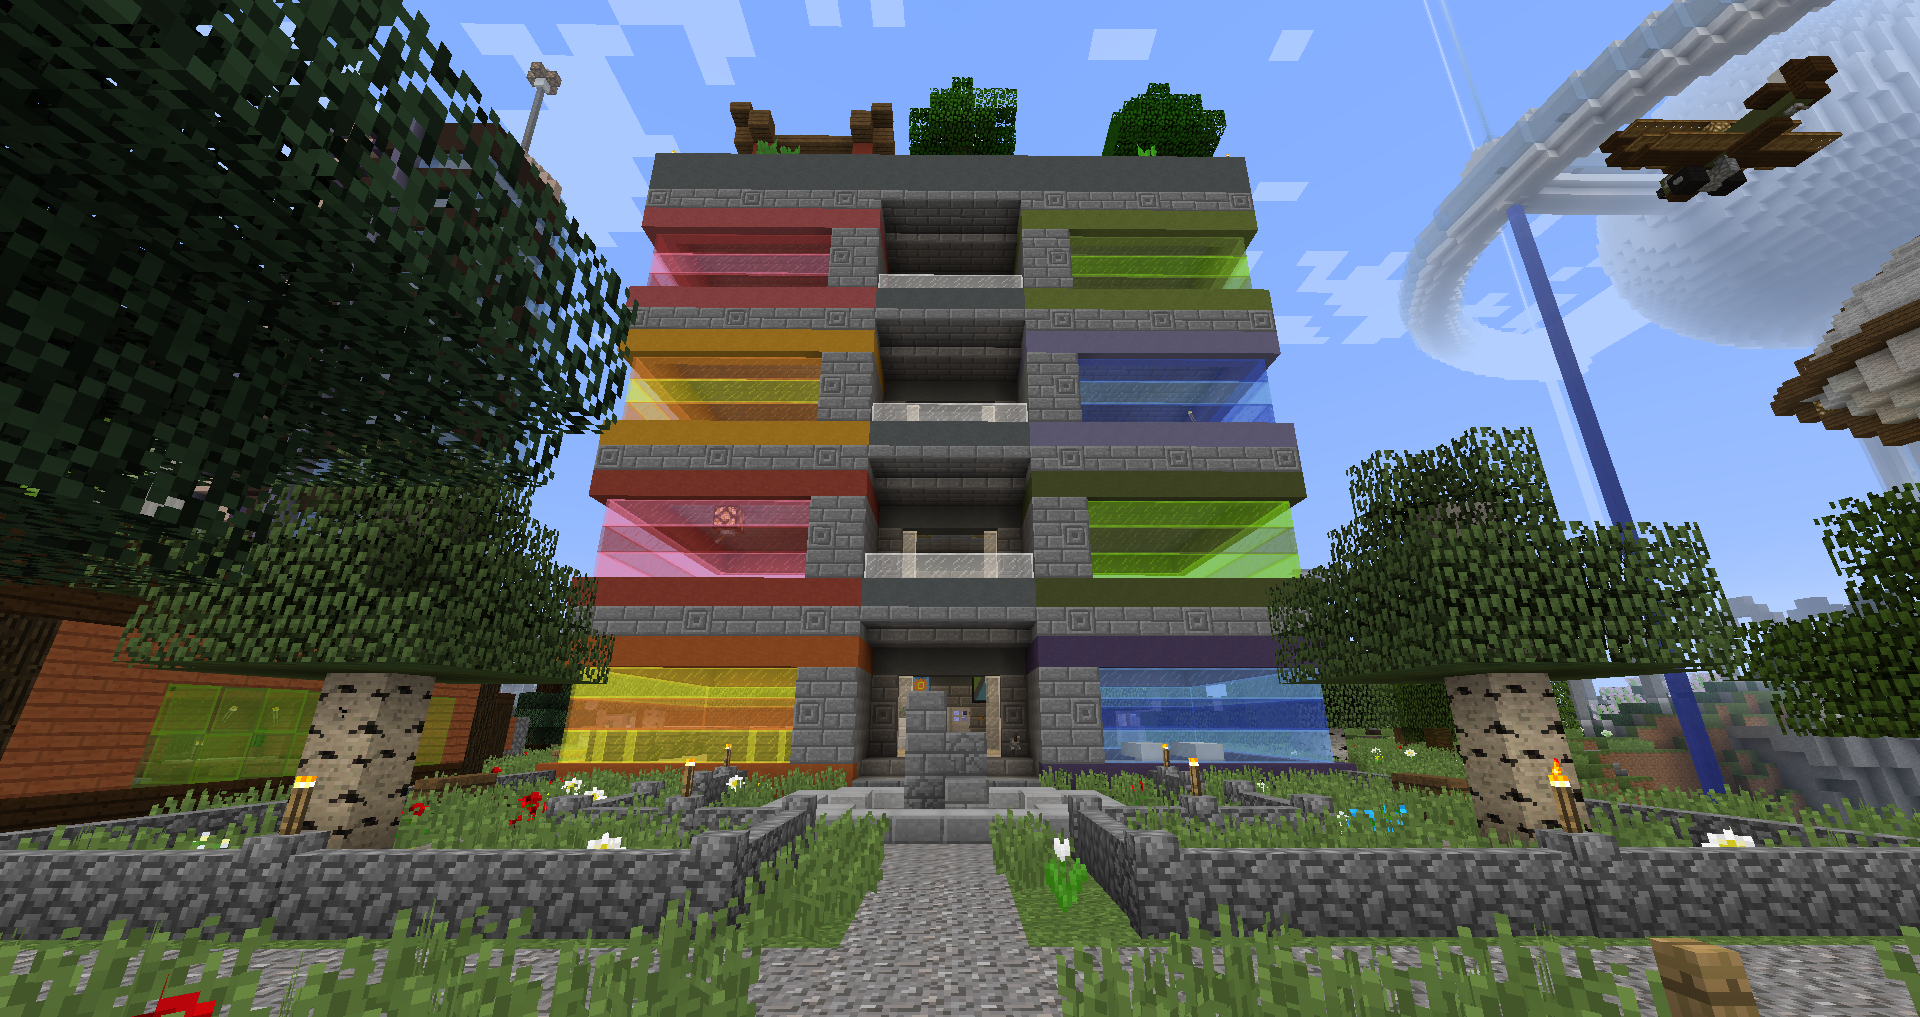 Rainbow-coloured tower of suites in Minecraft